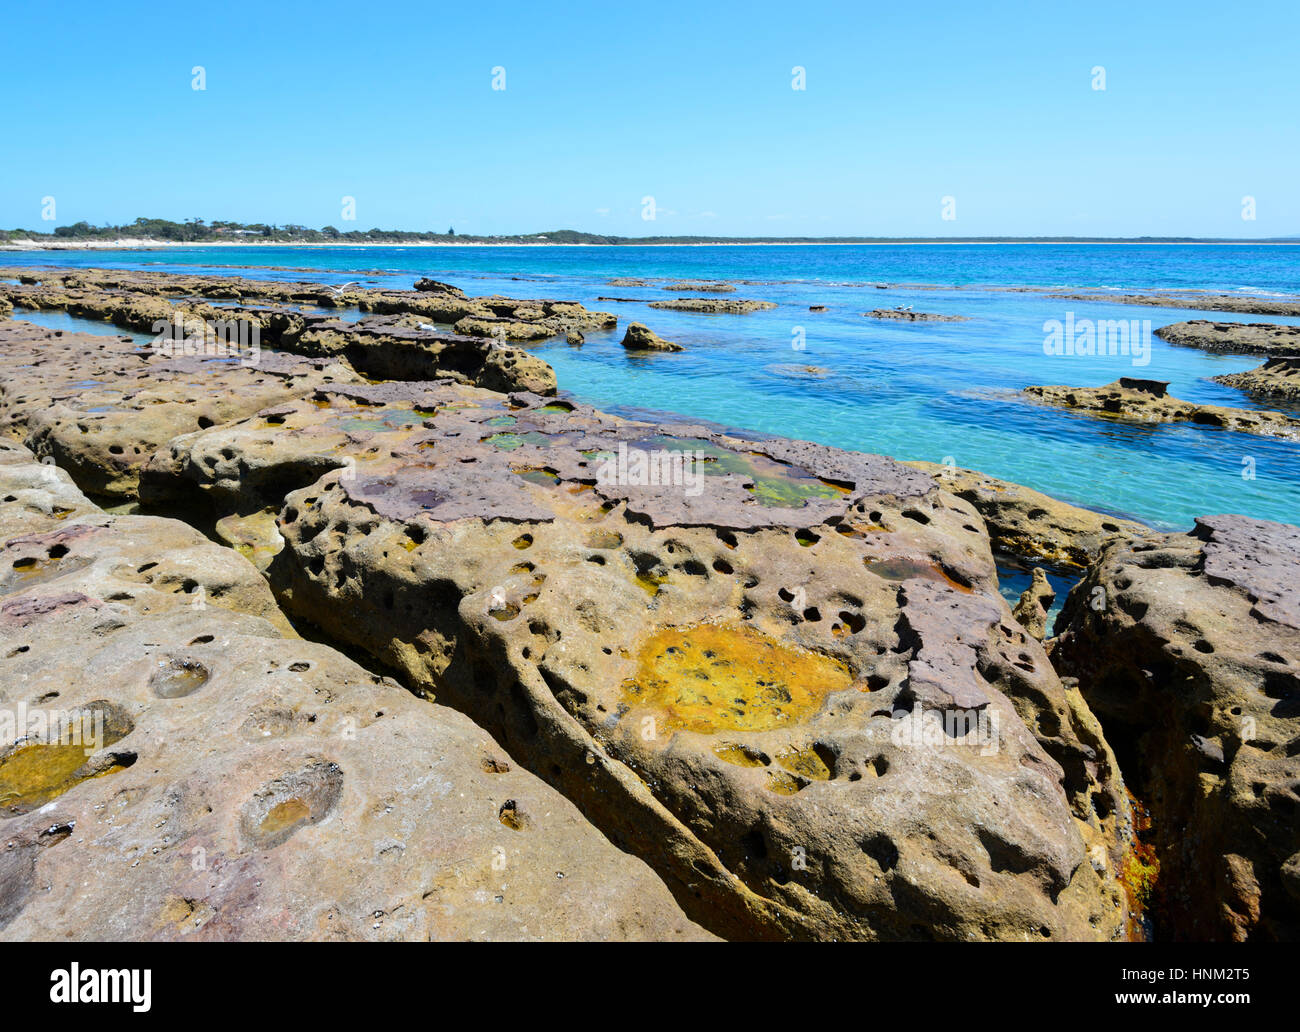 Sandstone rock formations at the scenic beach of Currarong, Shoalhaven area, New South Wales, NSW, Australia - Stock Image